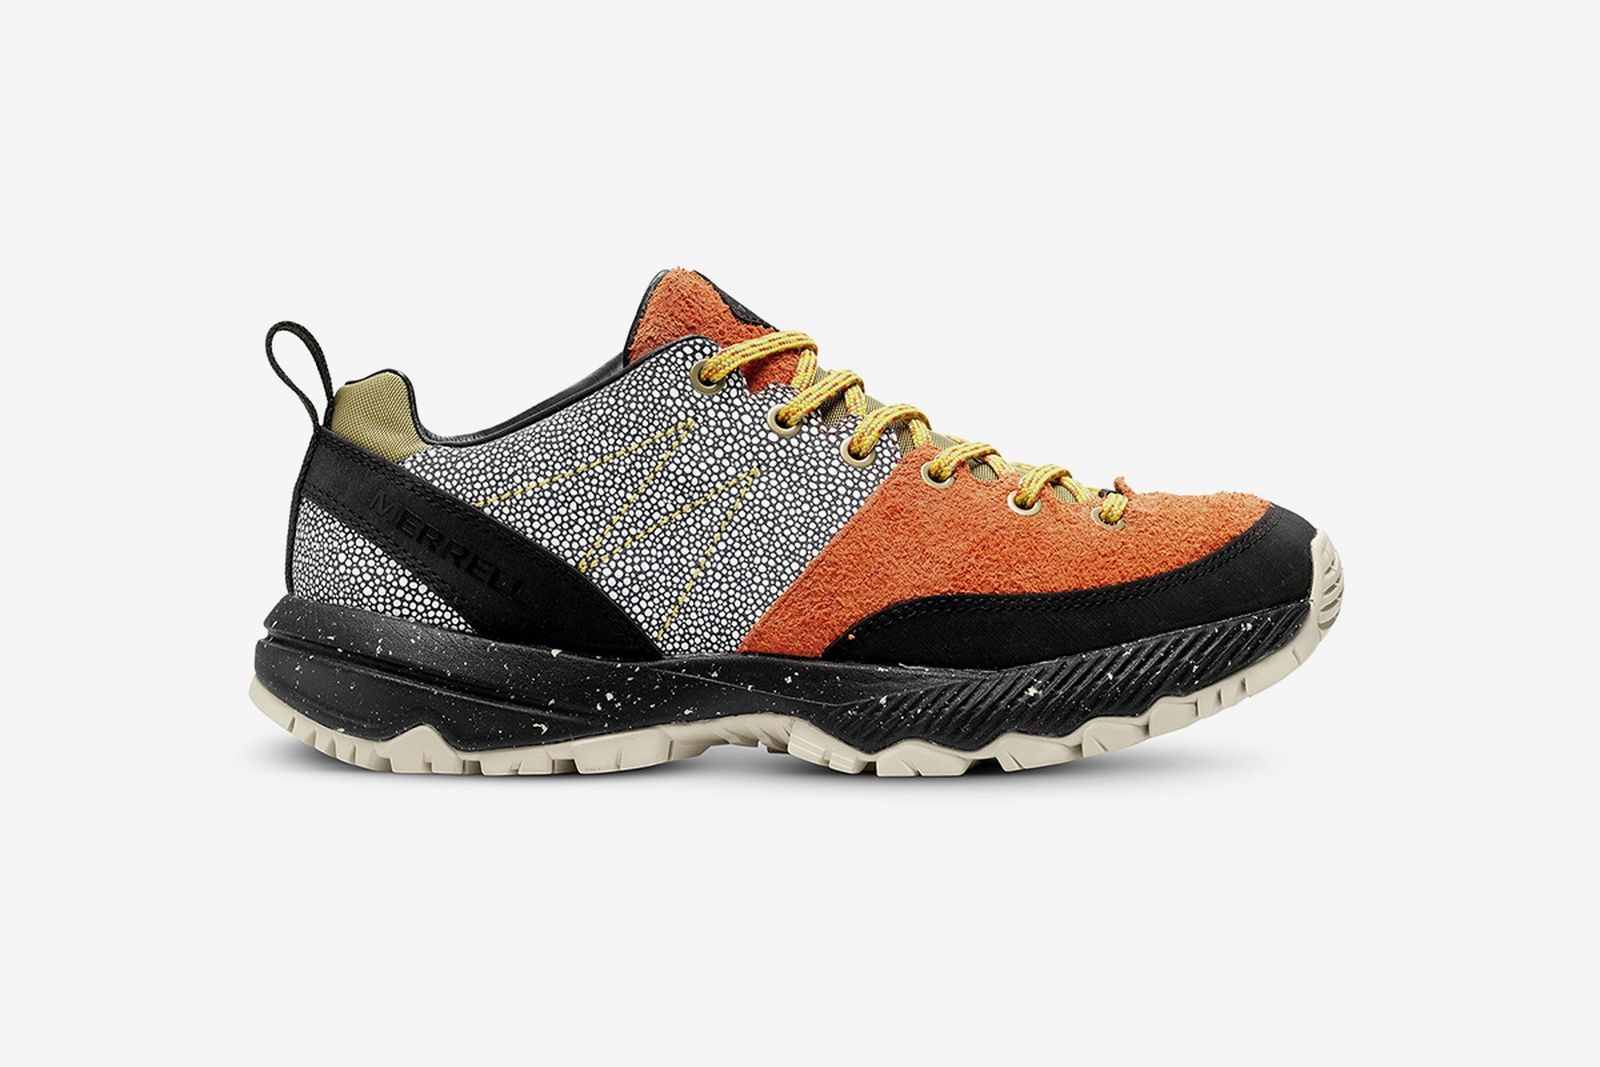 merrell-ss21-1trl-collection-06